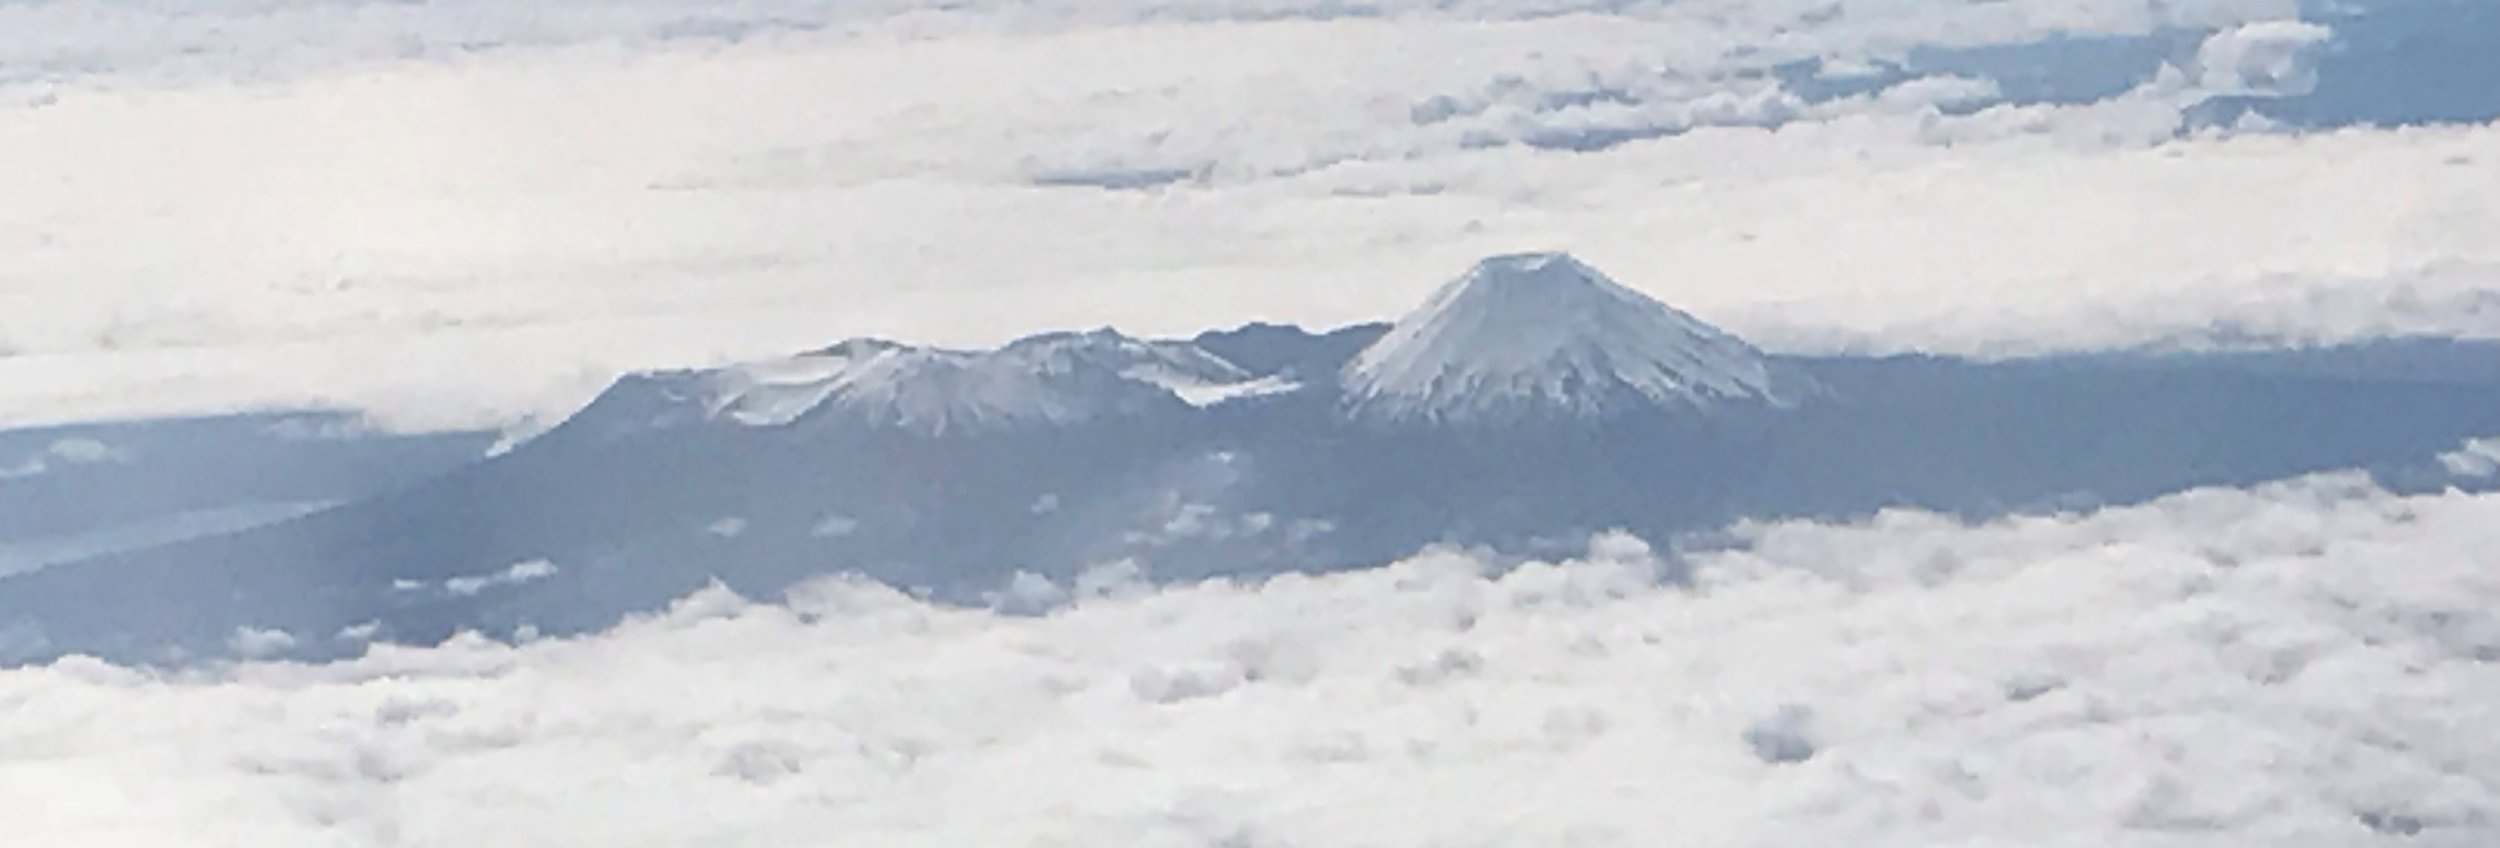 Tongariro is to the left and Ngauruhoe to the right.